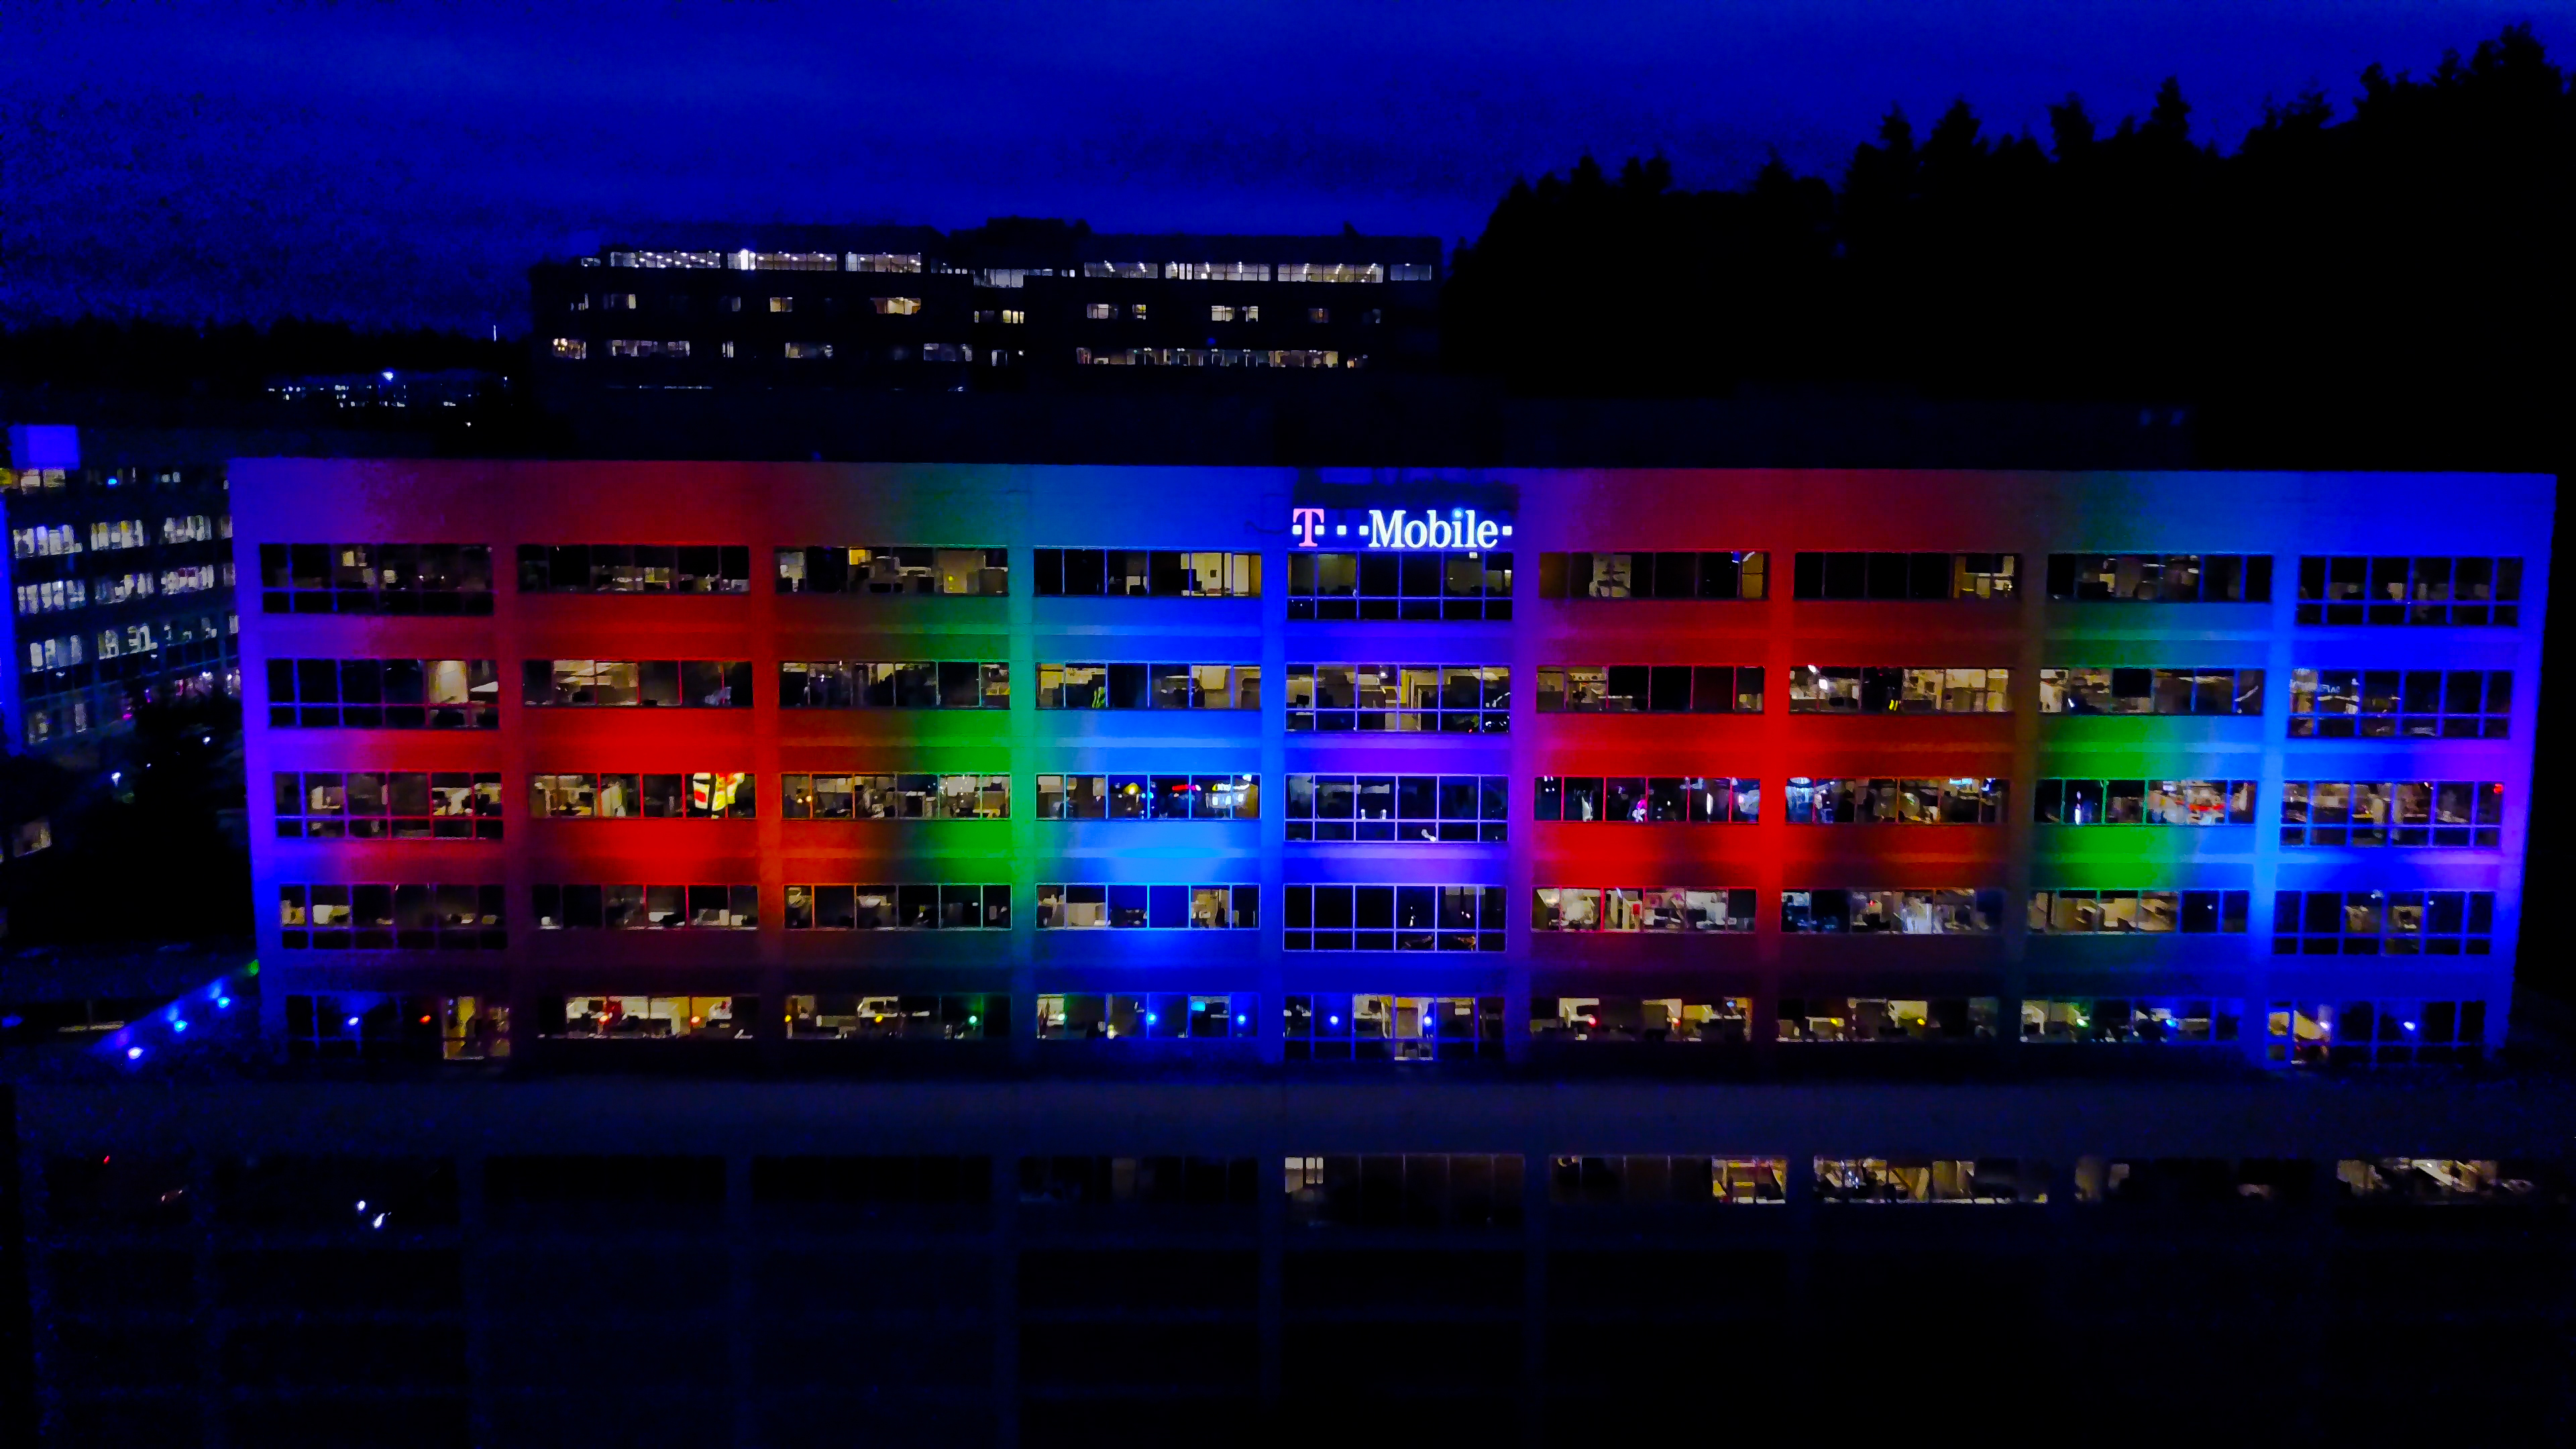 Media Alert: T-Mobile Shows #UnlimitedPride in 2017 | Business Wire